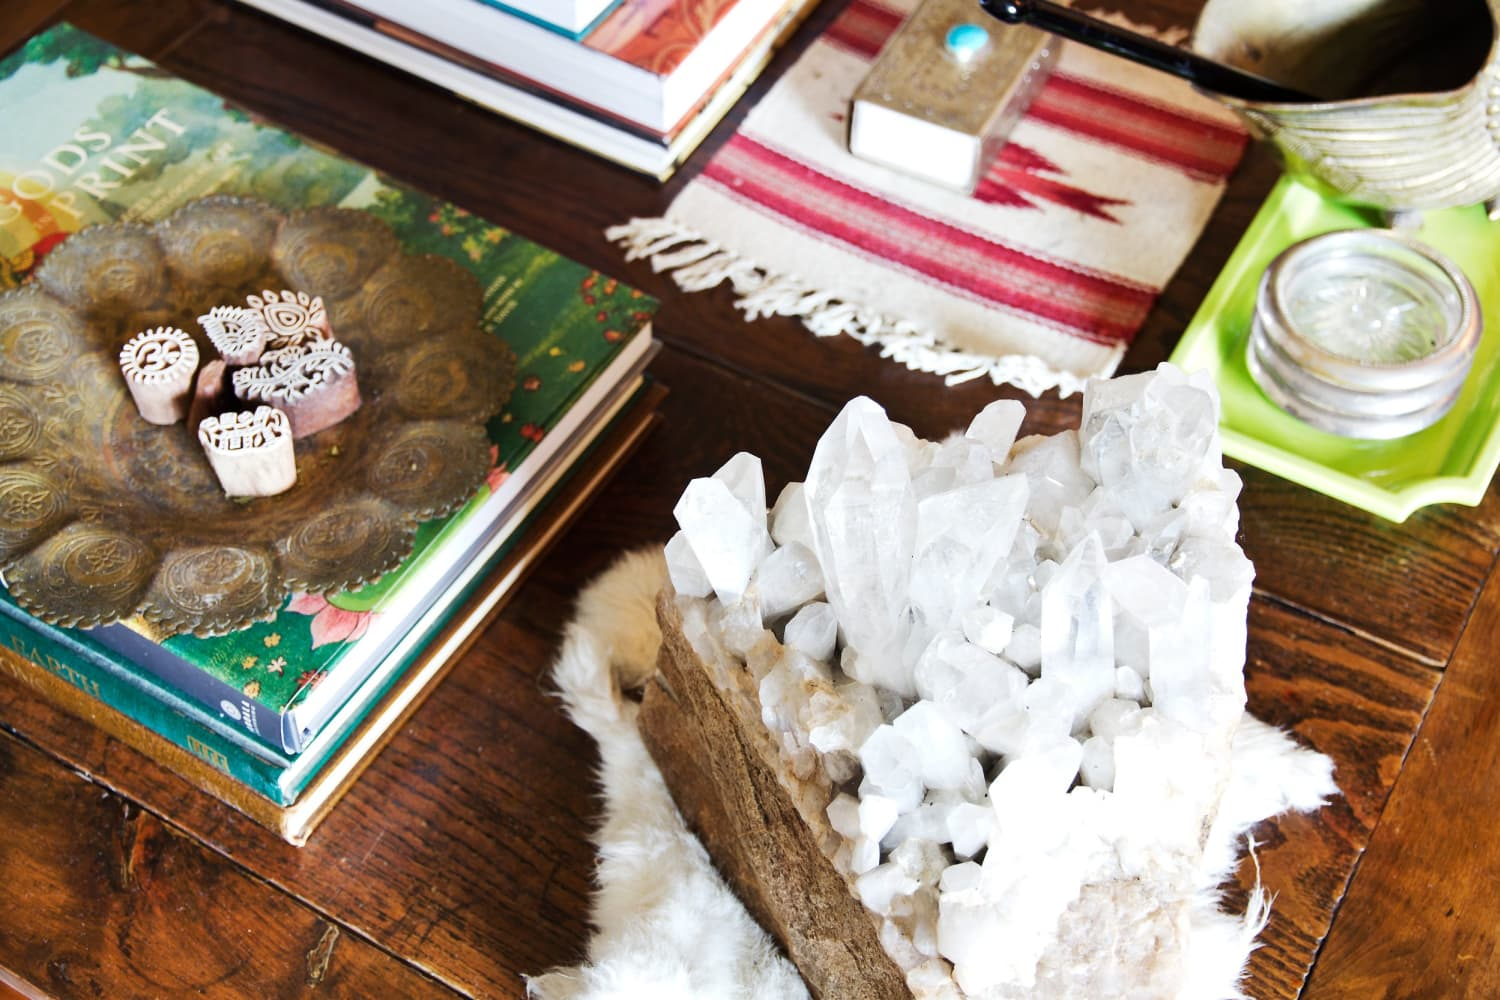 Decorating with Crystals: Totally WooWoo, or Something Worth Considering?